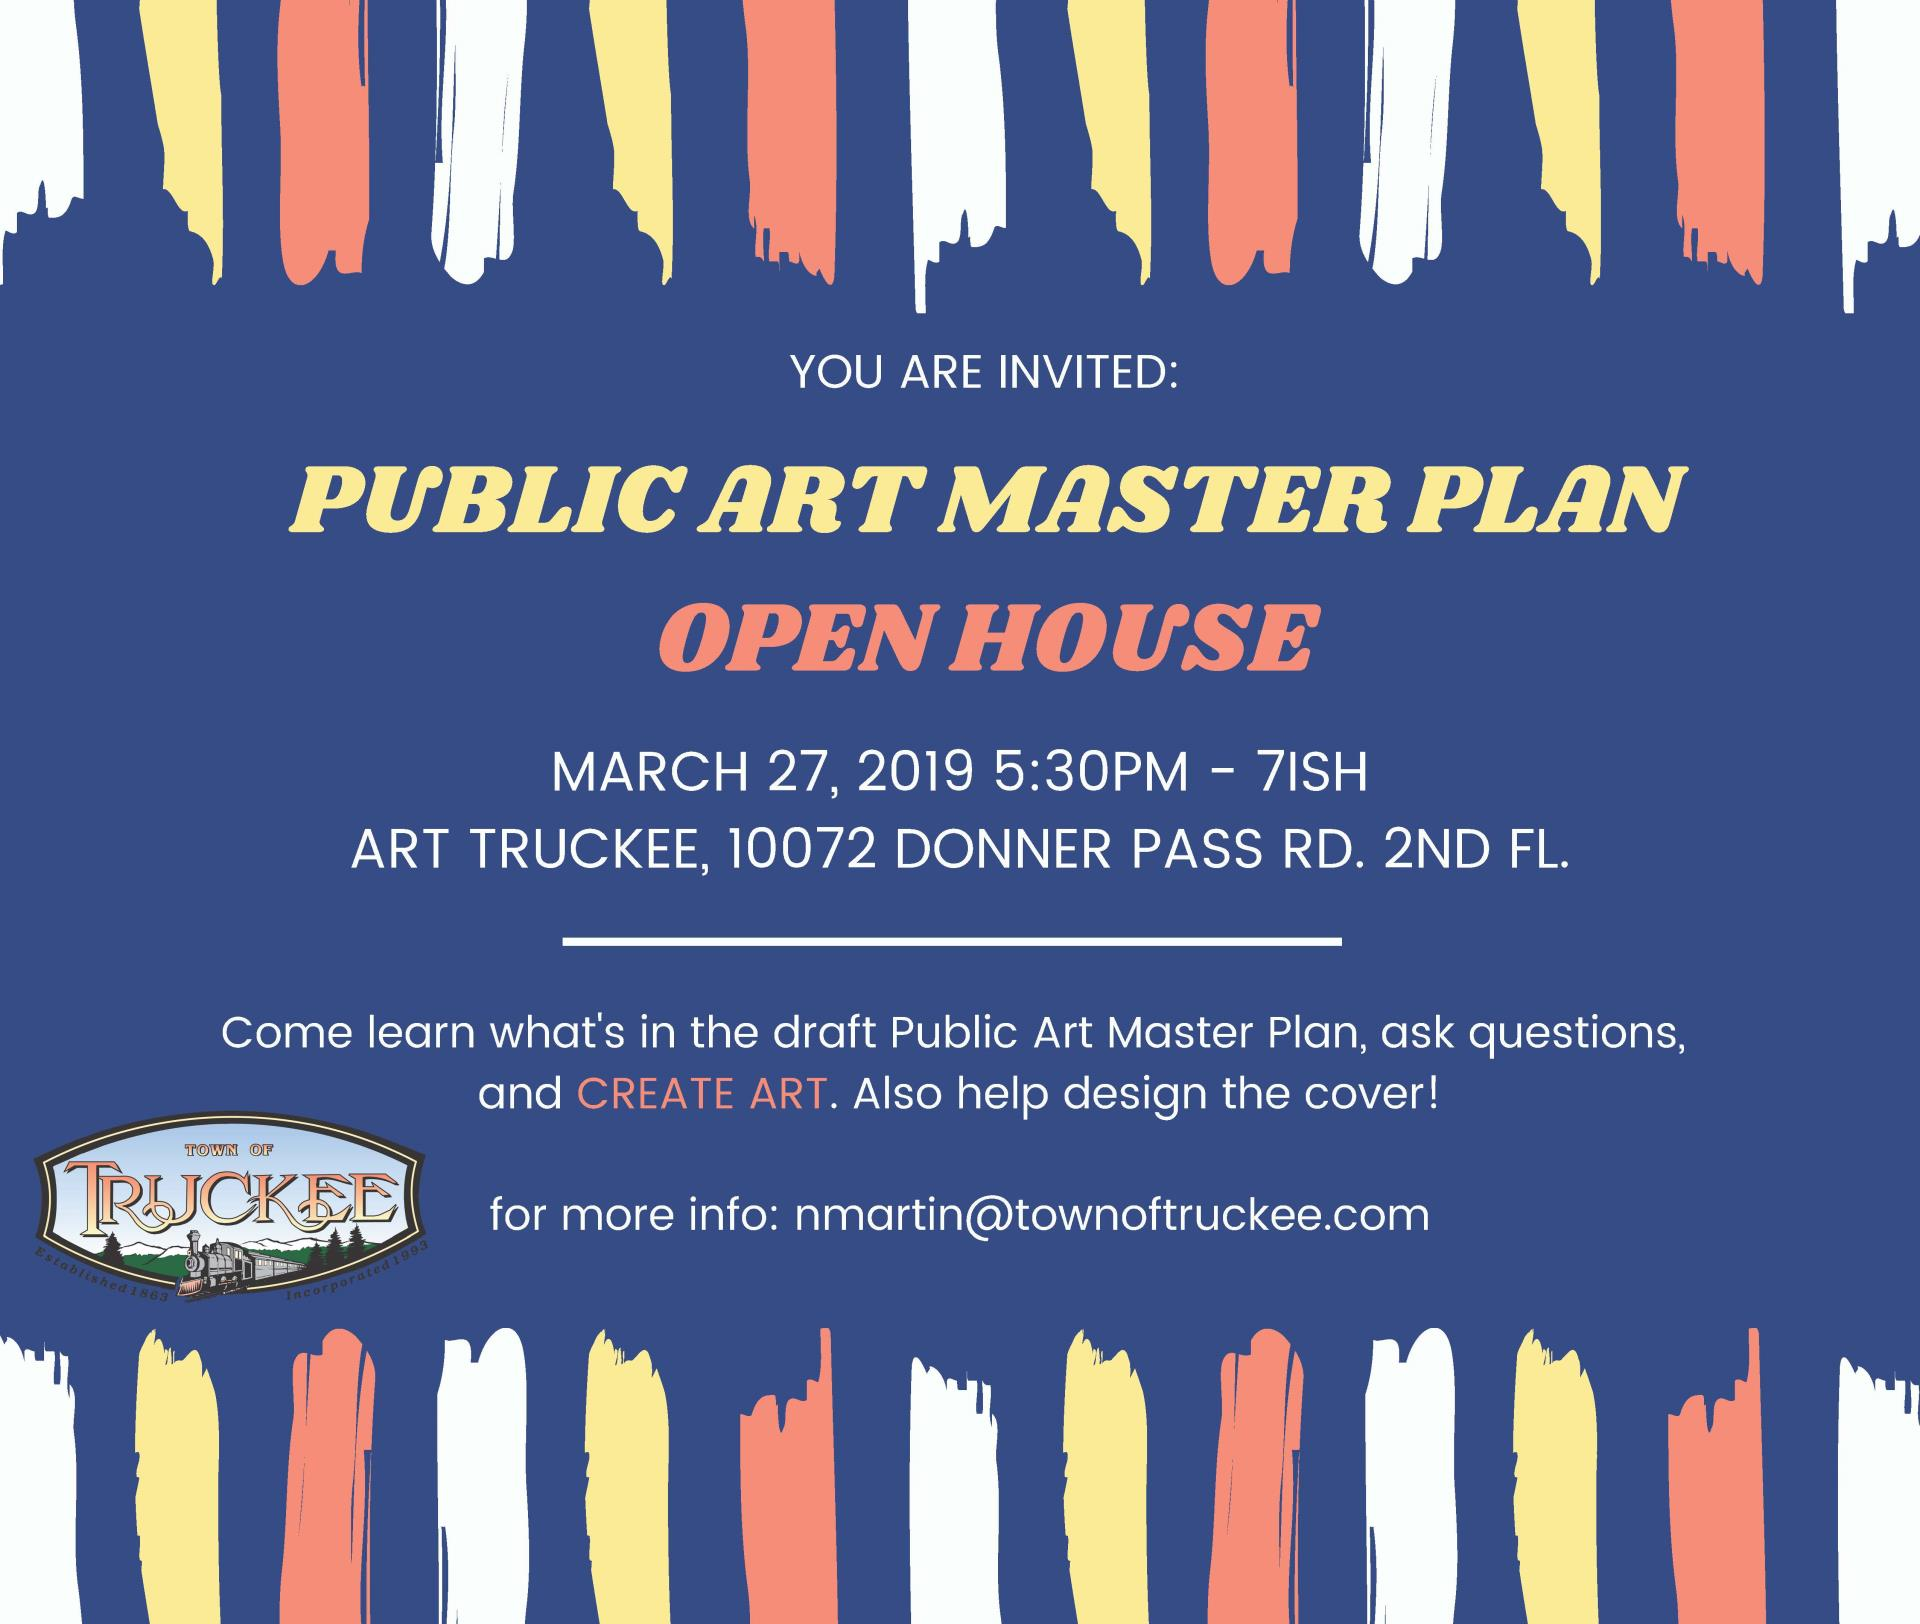 Public Art Master Plan Open House